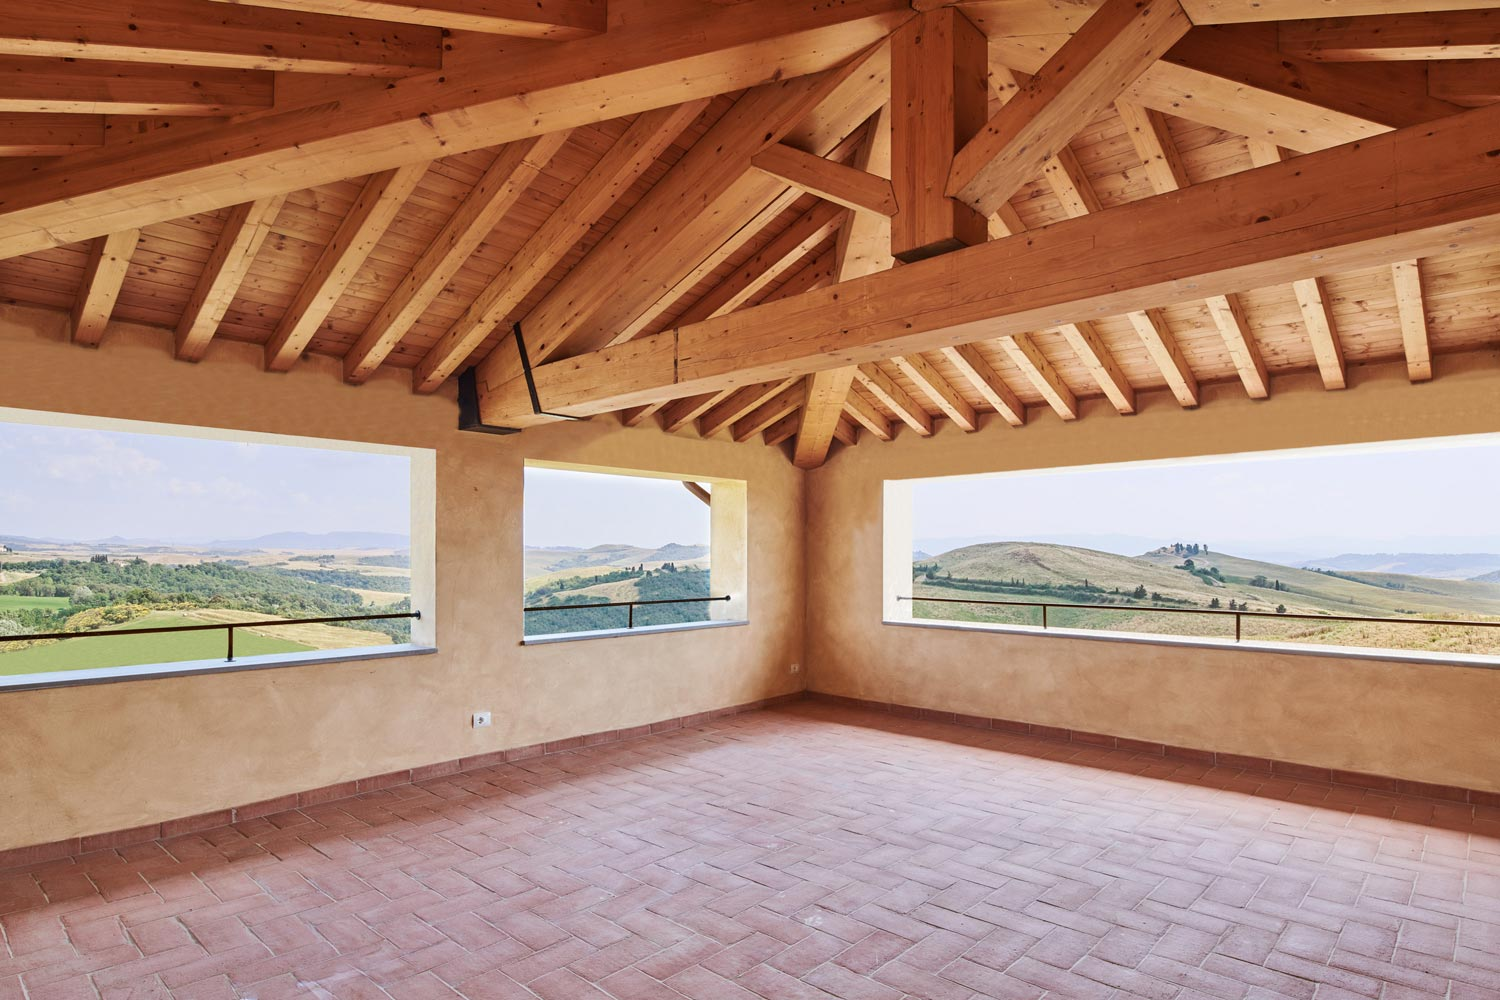 Il Belvedere 4B - villa for sale in Tuscany offering a terrace with 360° countryside views